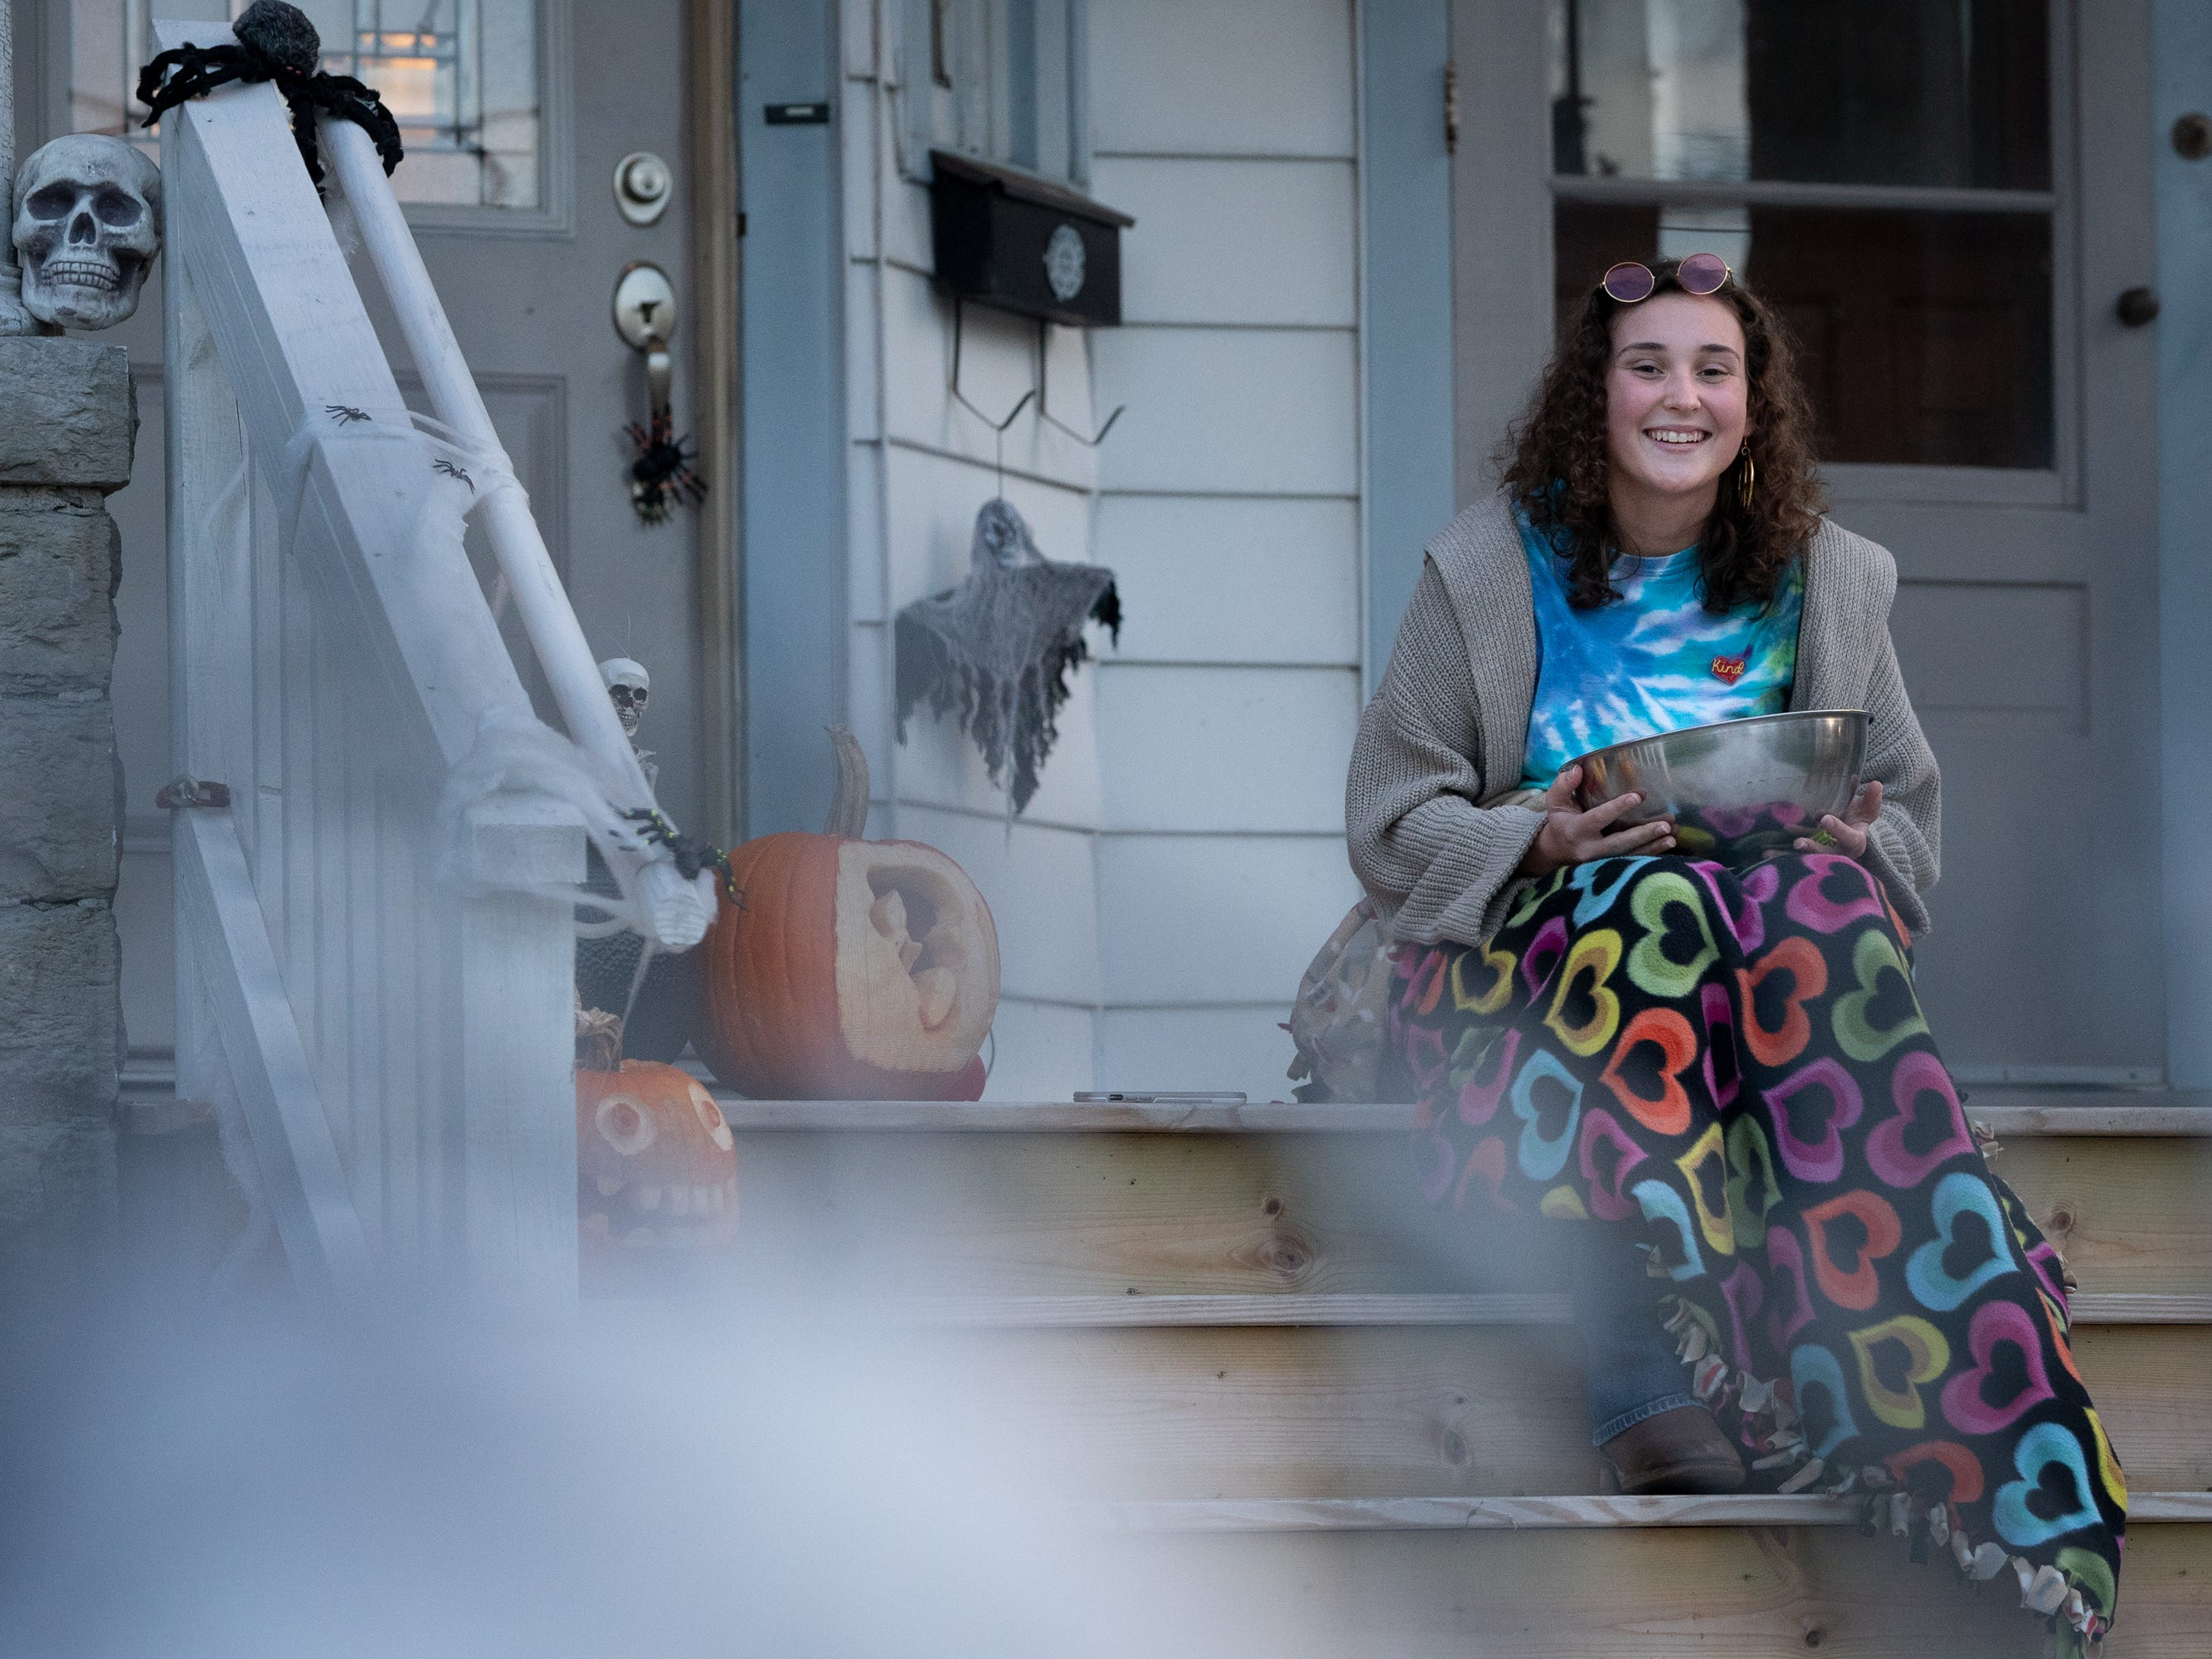 Cora Strand waits on the porch with candy for trick or treaters. Children, along with their parents, made the most of the beautiful autumn weather to trick or treat in Oshkosh Wednesday evening.